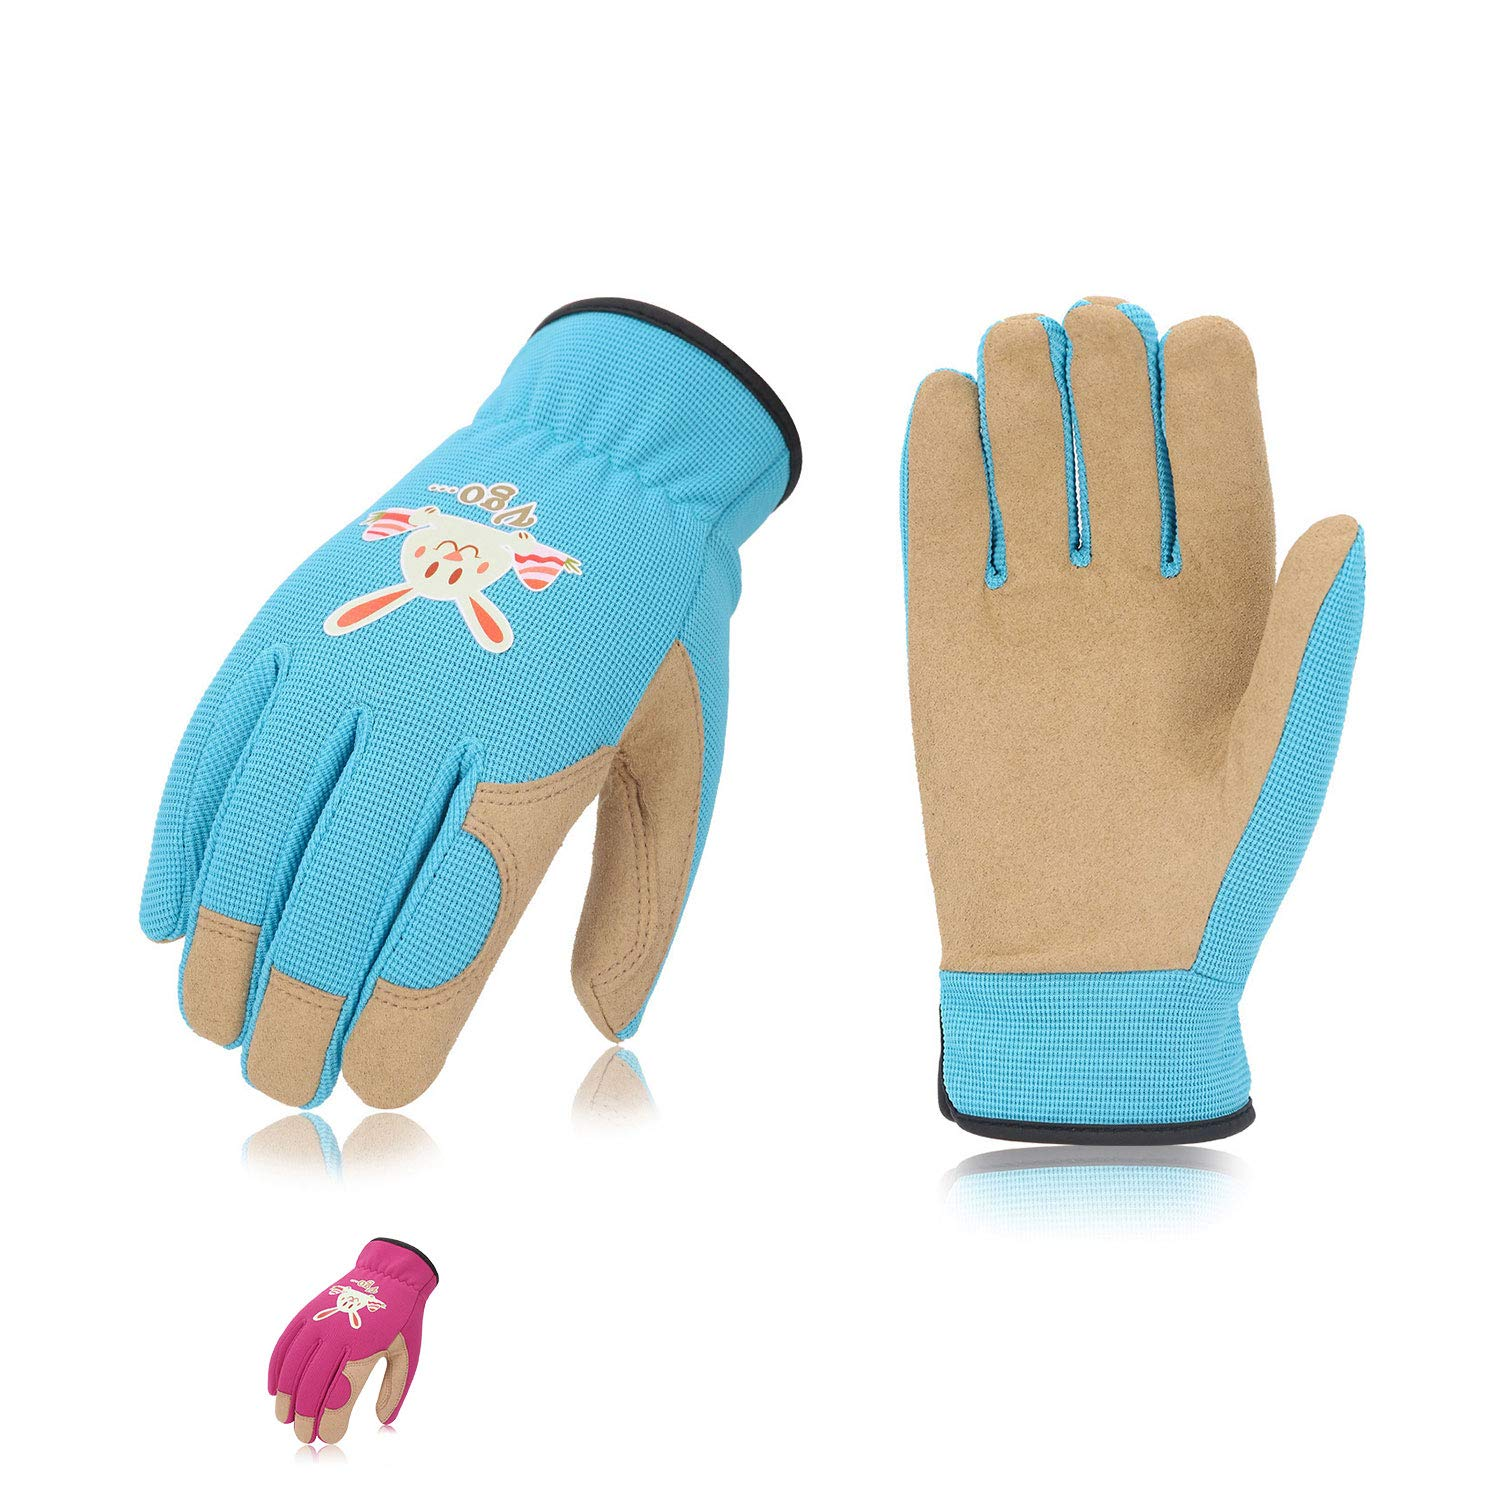 Vgo 2Pairs Age 3-4 Kids Gardening, Lawning, Working Gloves(Size XS, 2Colors, KID-SL7362)